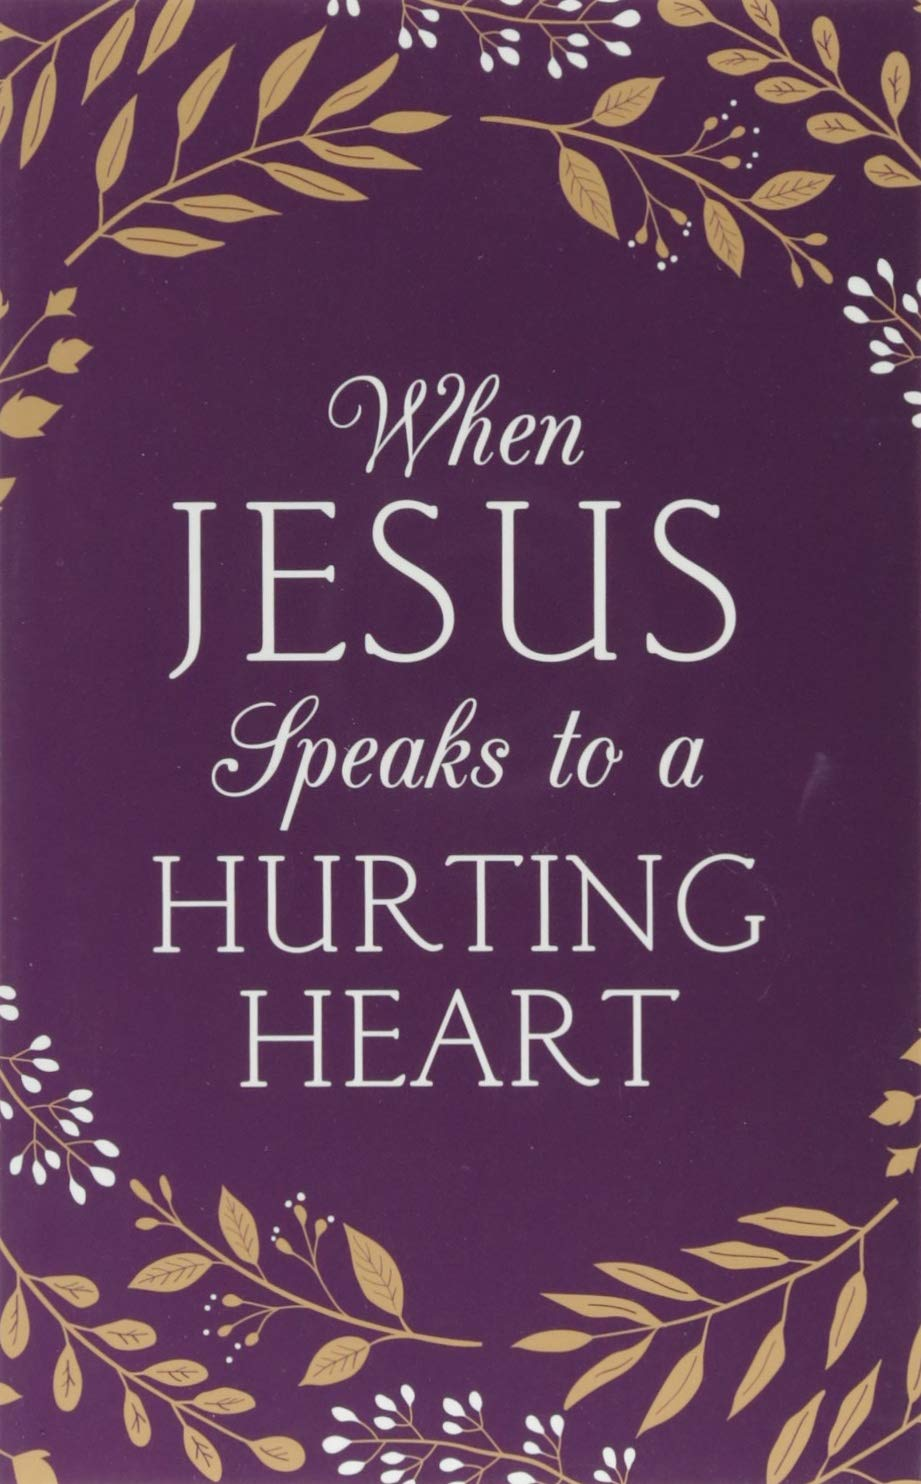 ROCKONLINE | New Creation Church | NCC | Joseph Prince | ROCK Bookshop | ROCK Bookstore | Star Vista | When Jesus Speaks to a Hurting Heart | Devotional | Free delivery for Singapore Orders above $50.